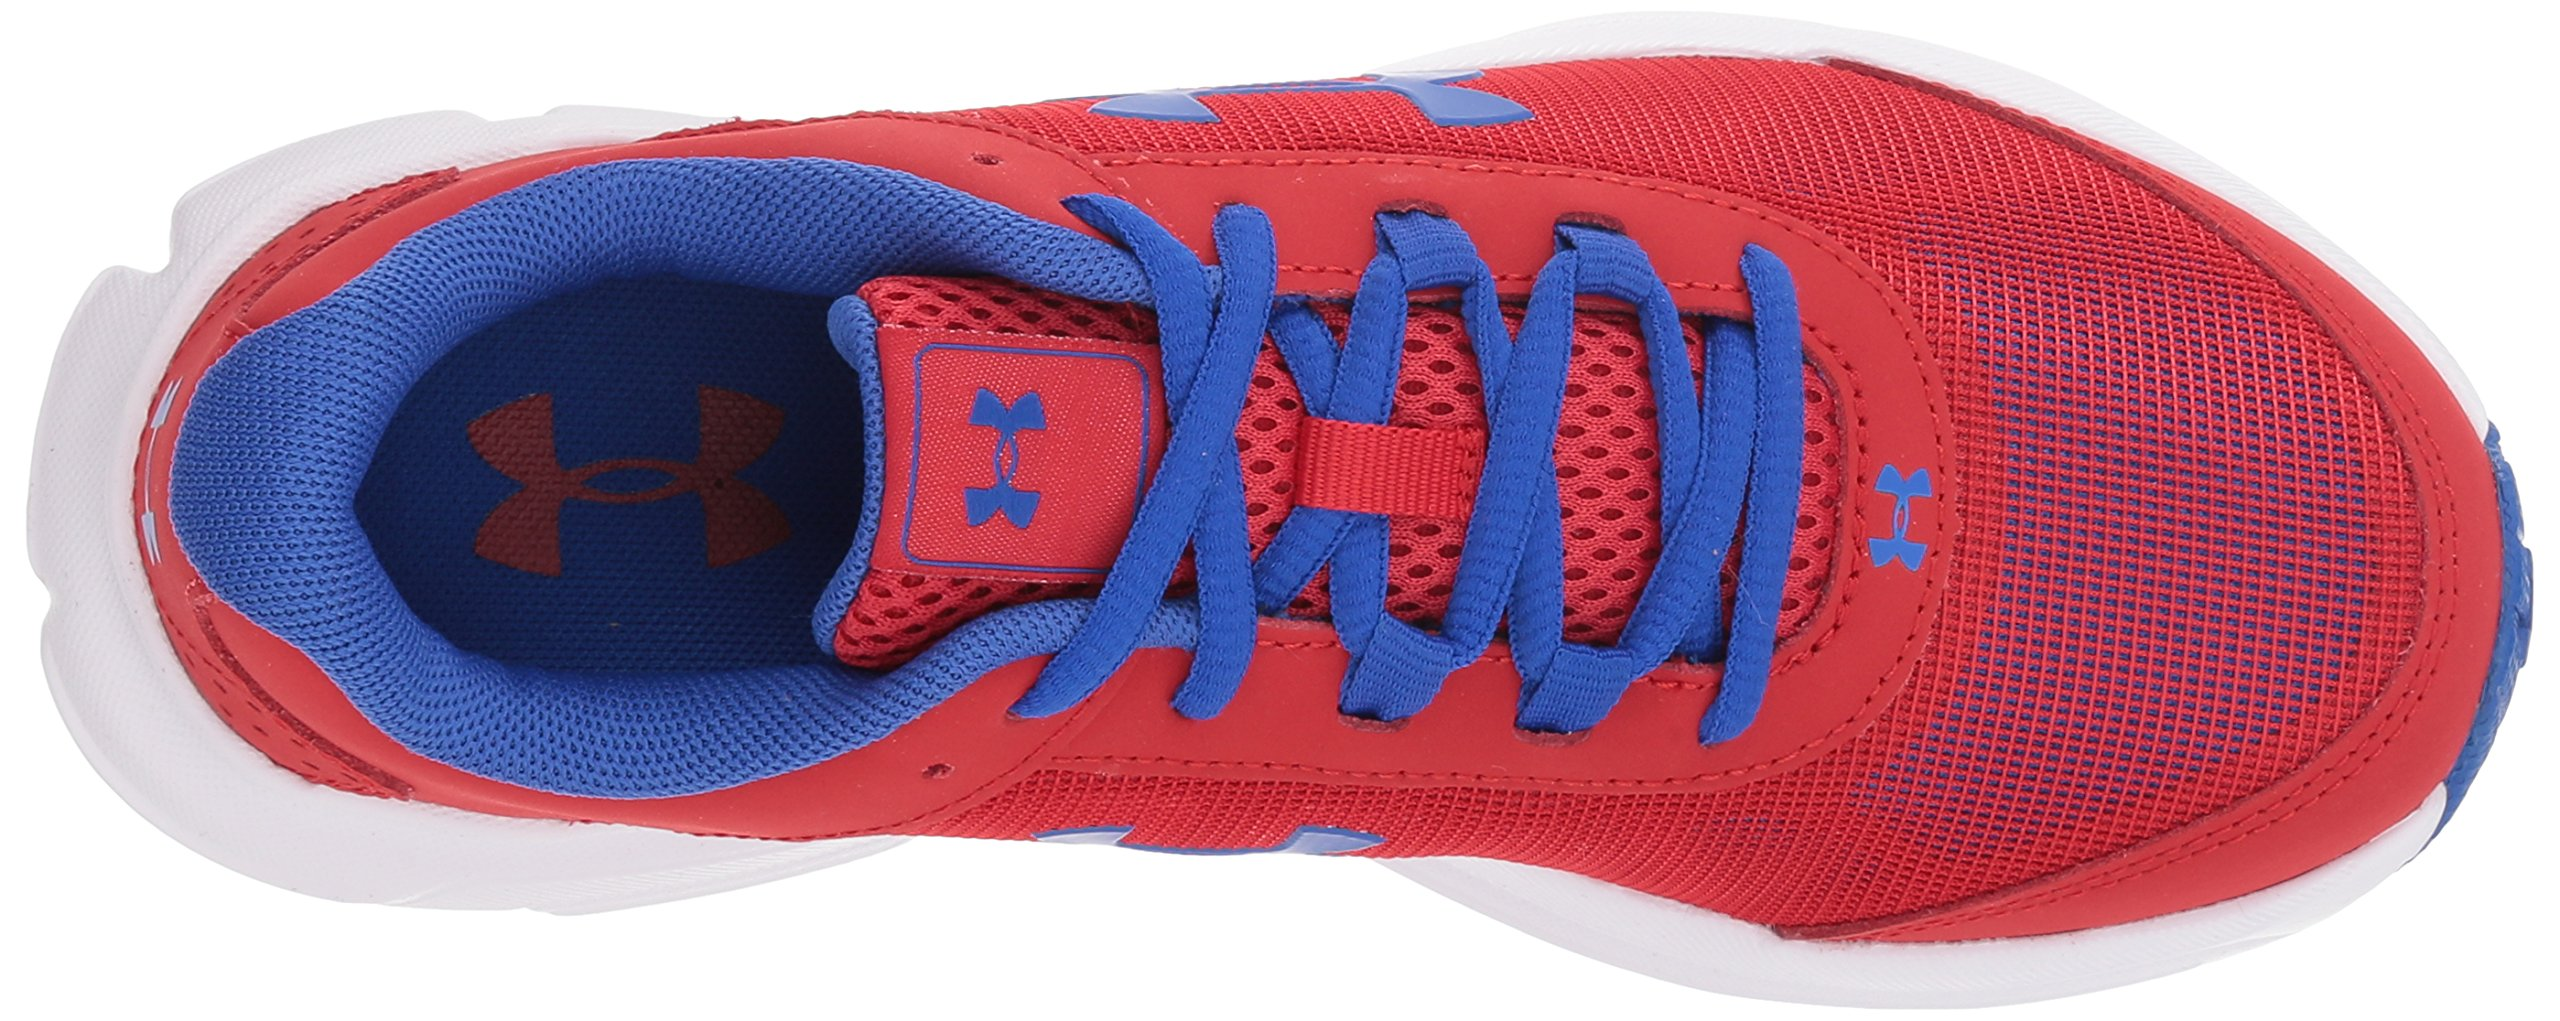 Under Armour Kids' Grade School Rave 2 Sneaker,Red (601)/White,3.5 M US by Under Armour (Image #7)